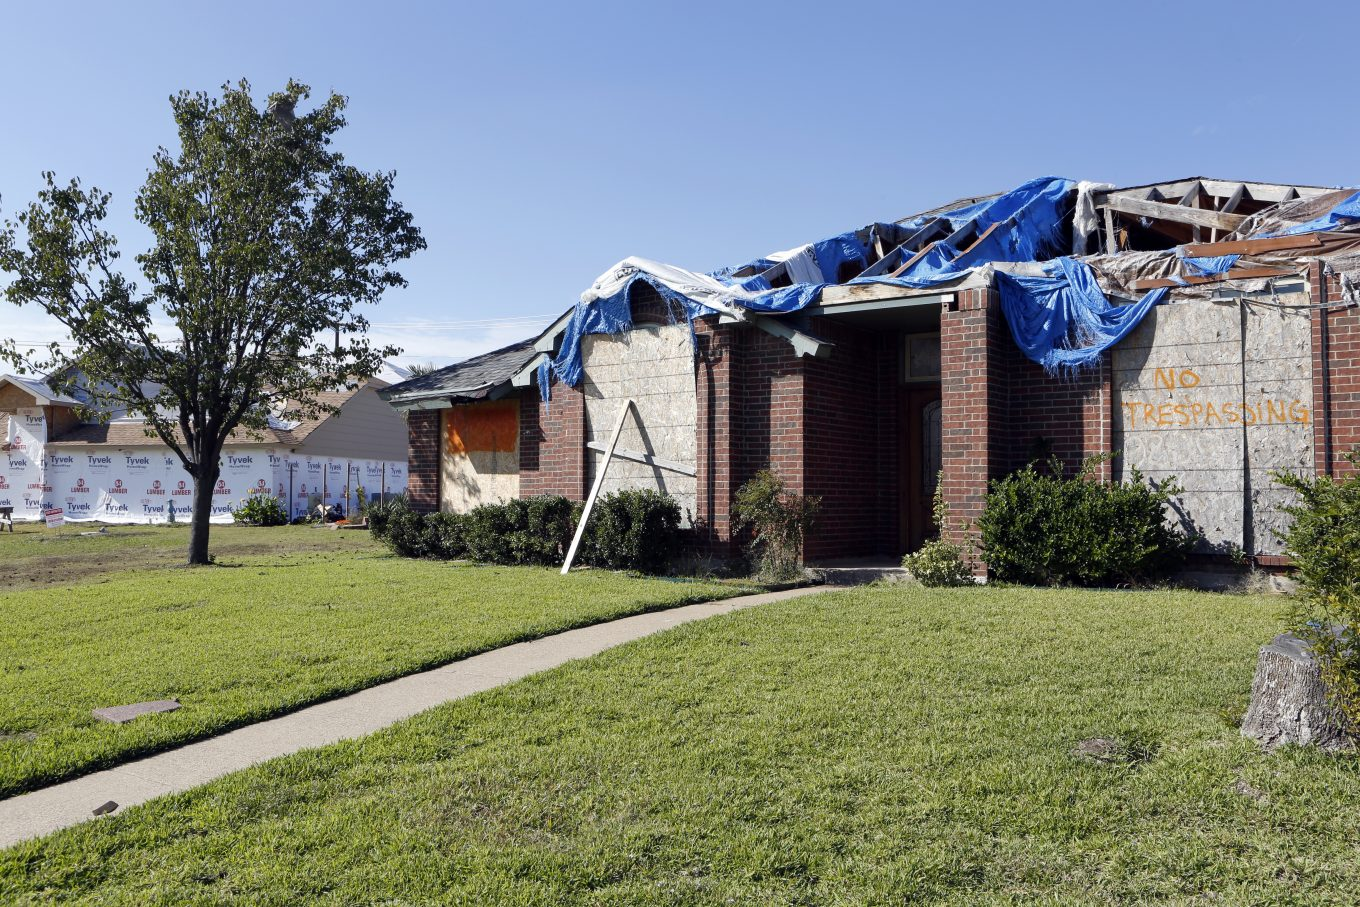 Homes across the street from Alfredo and Anthony Fowler-Rainone in Rowlett. Photo/Lara Solt